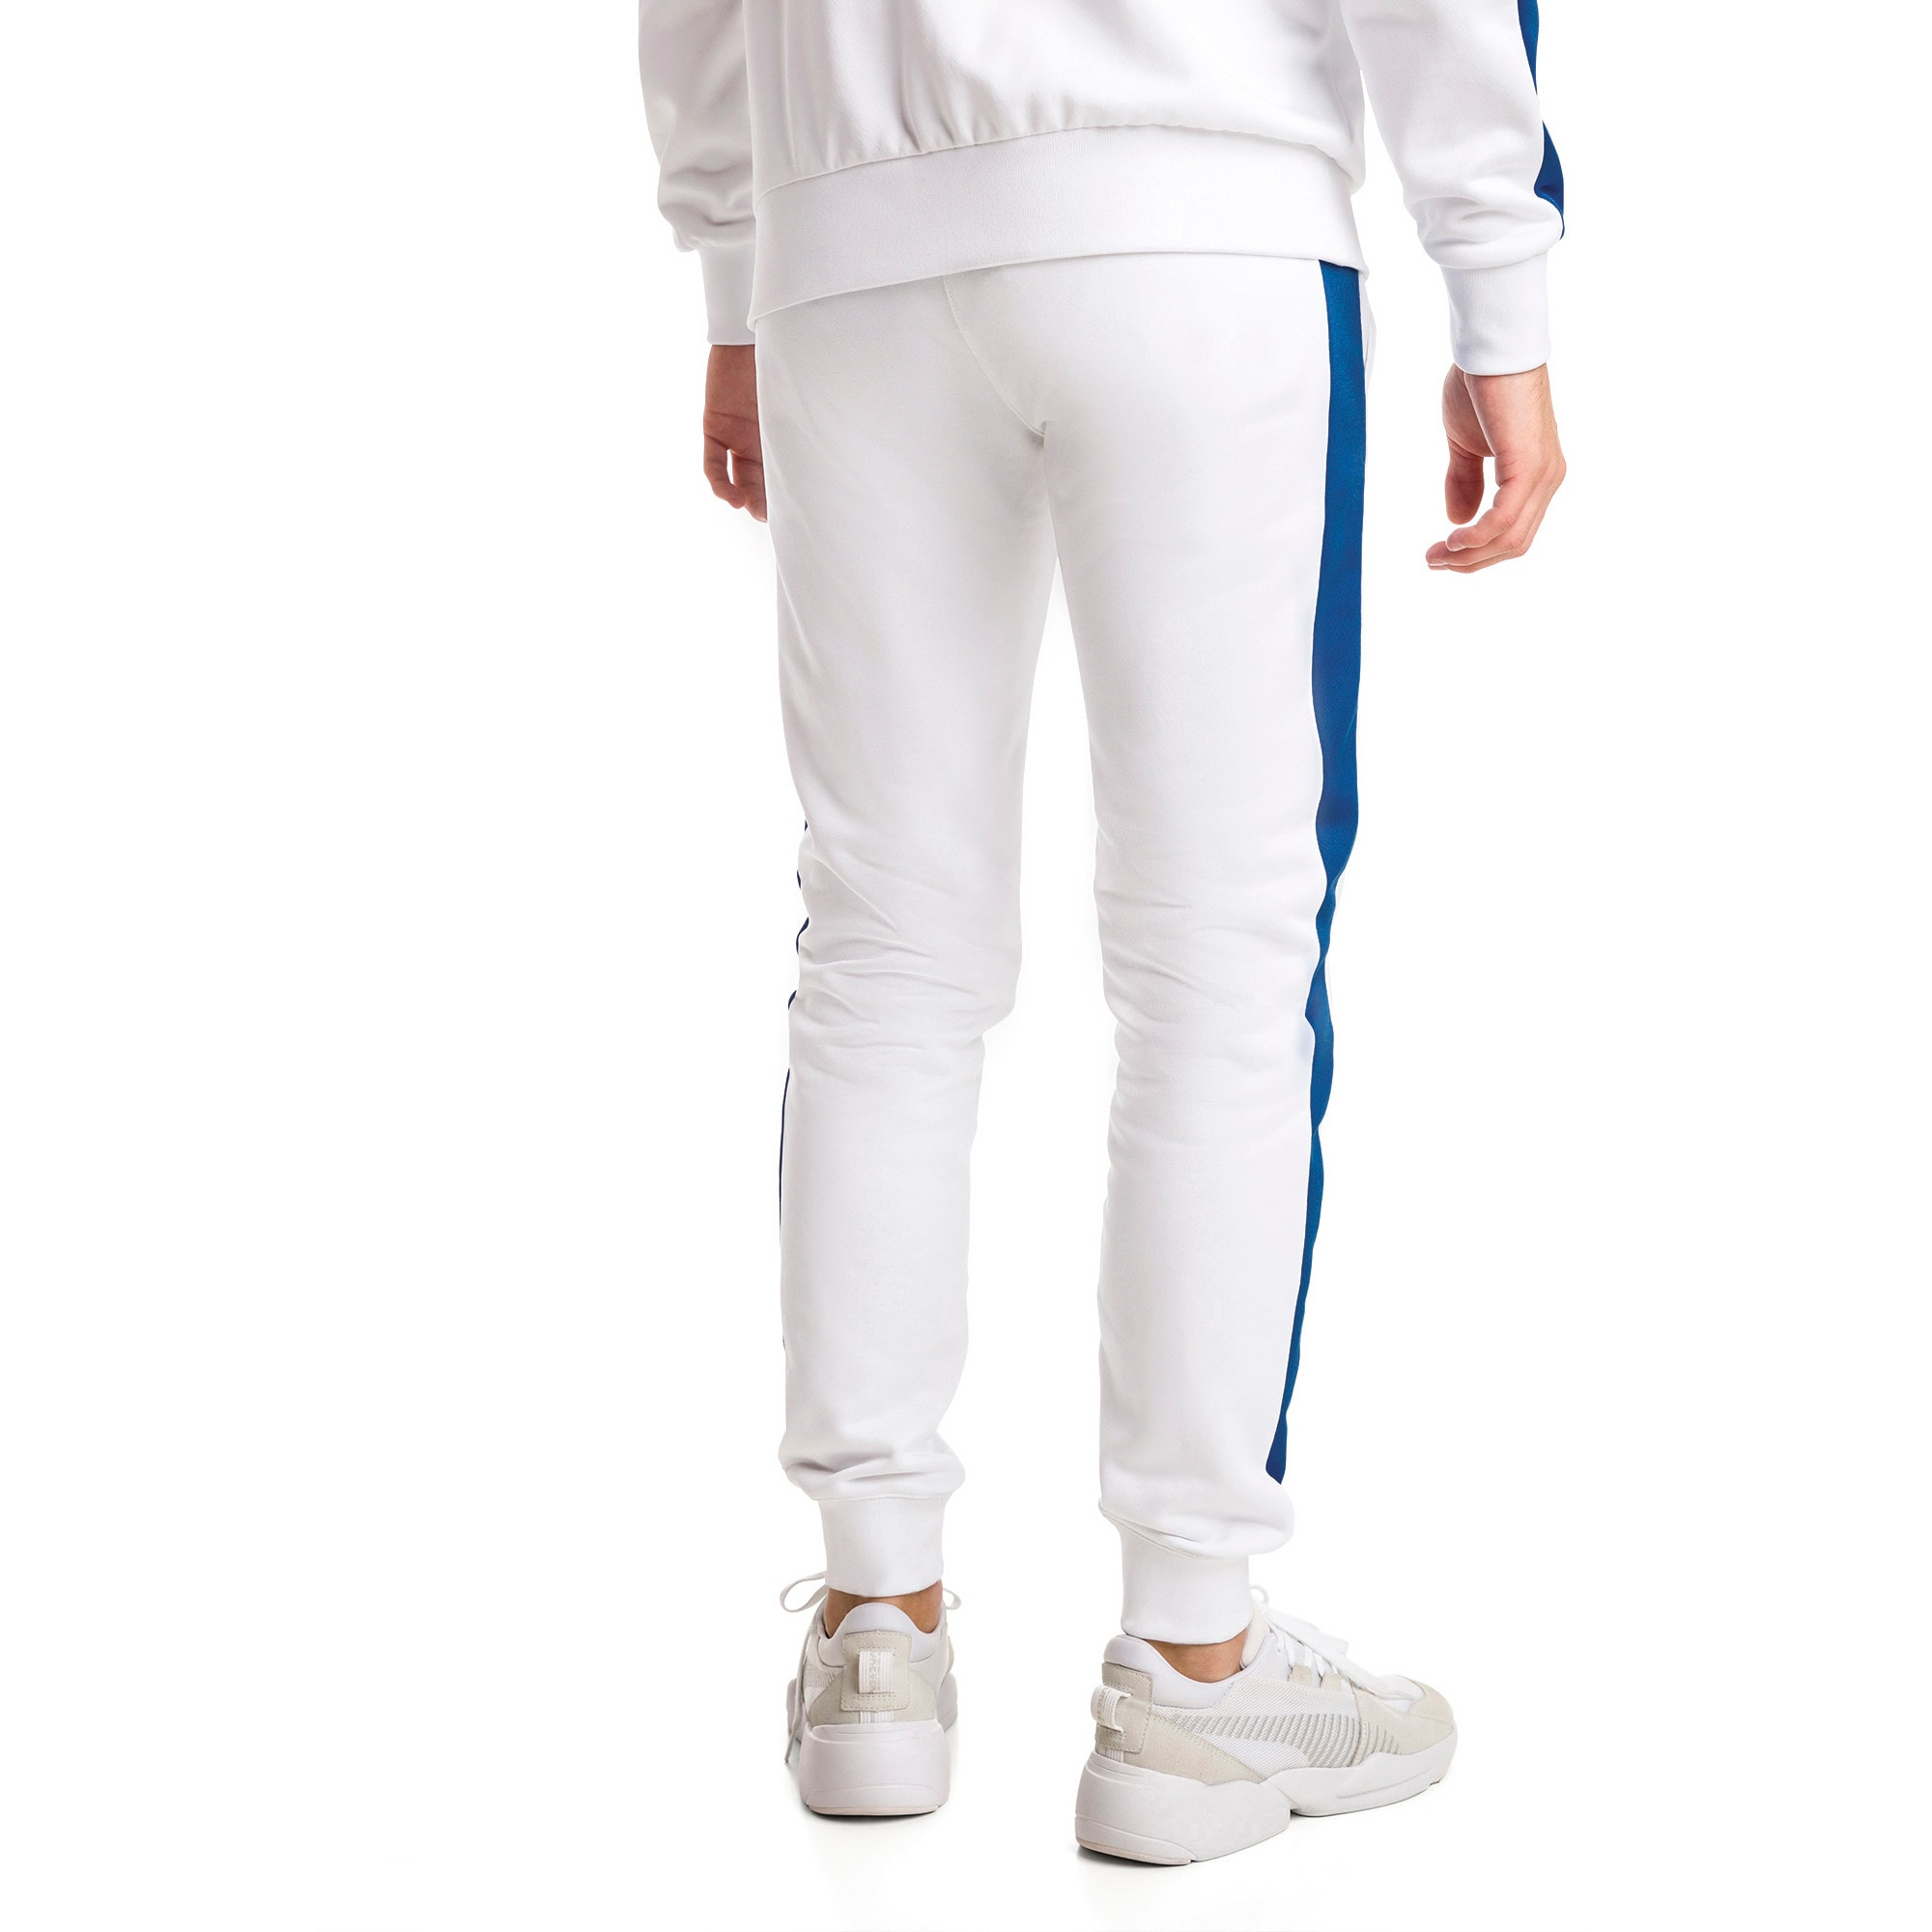 Thumbnail 3 of Iconic T7 Herren Gestrickte Sweatpants, Puma White, medium